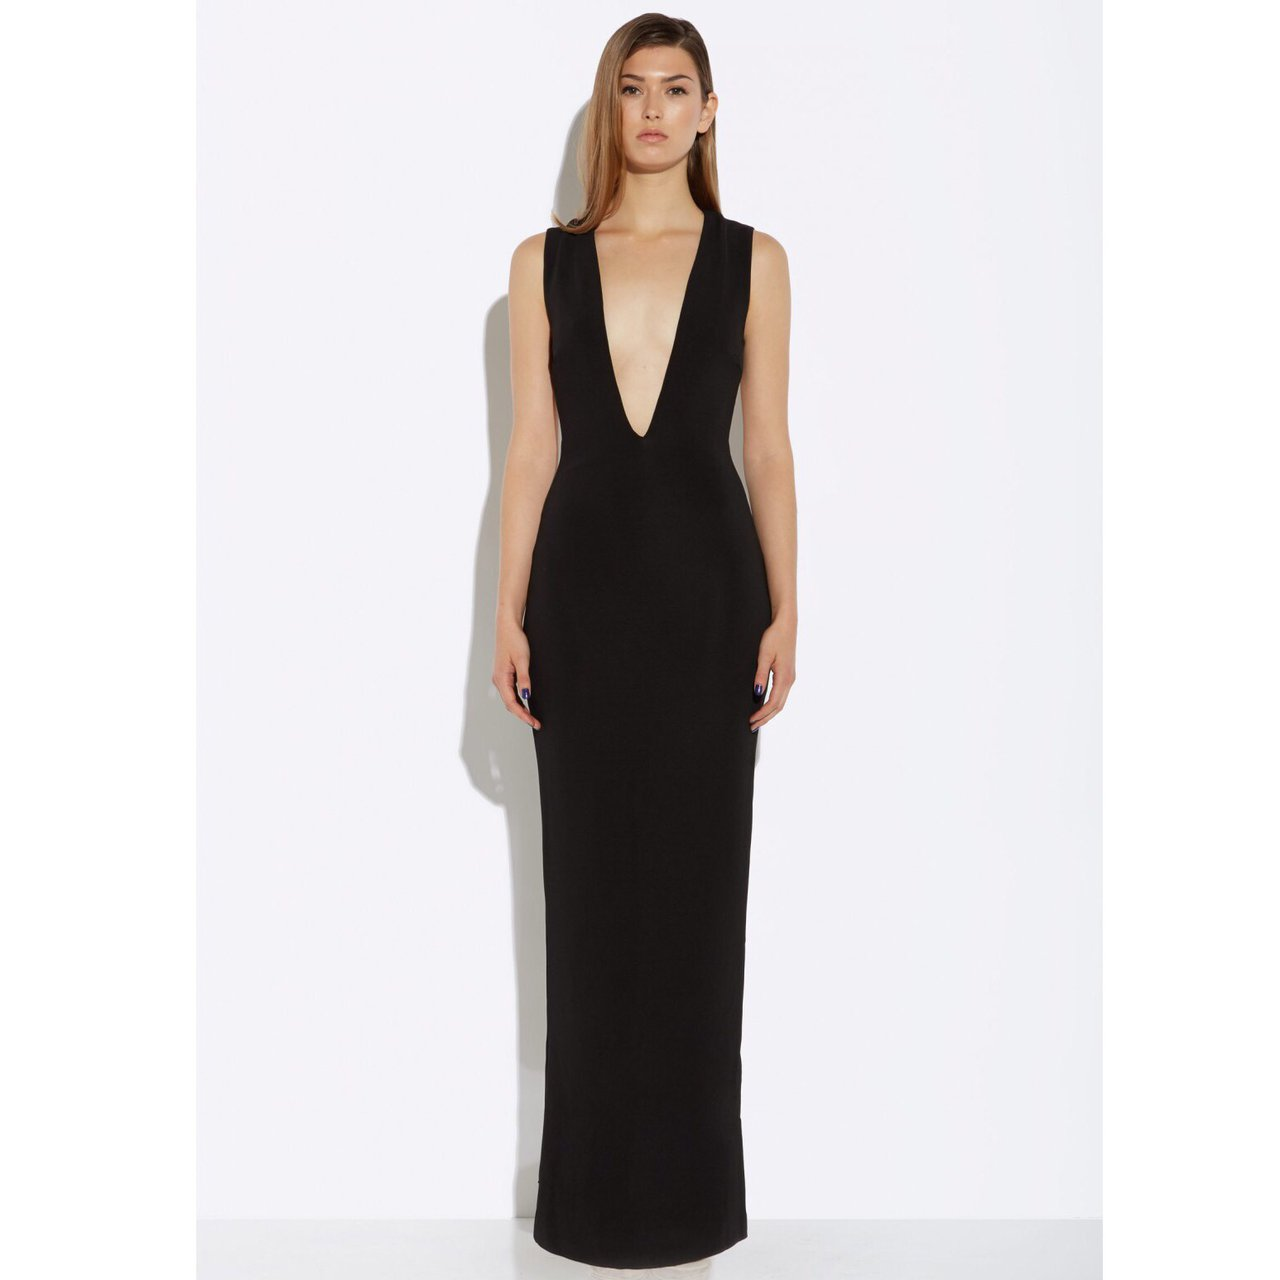 6ad08b9d04 AQAQ or Aqua Viena Black Deep Plunge Maxi Dress. Has a deep - Depop